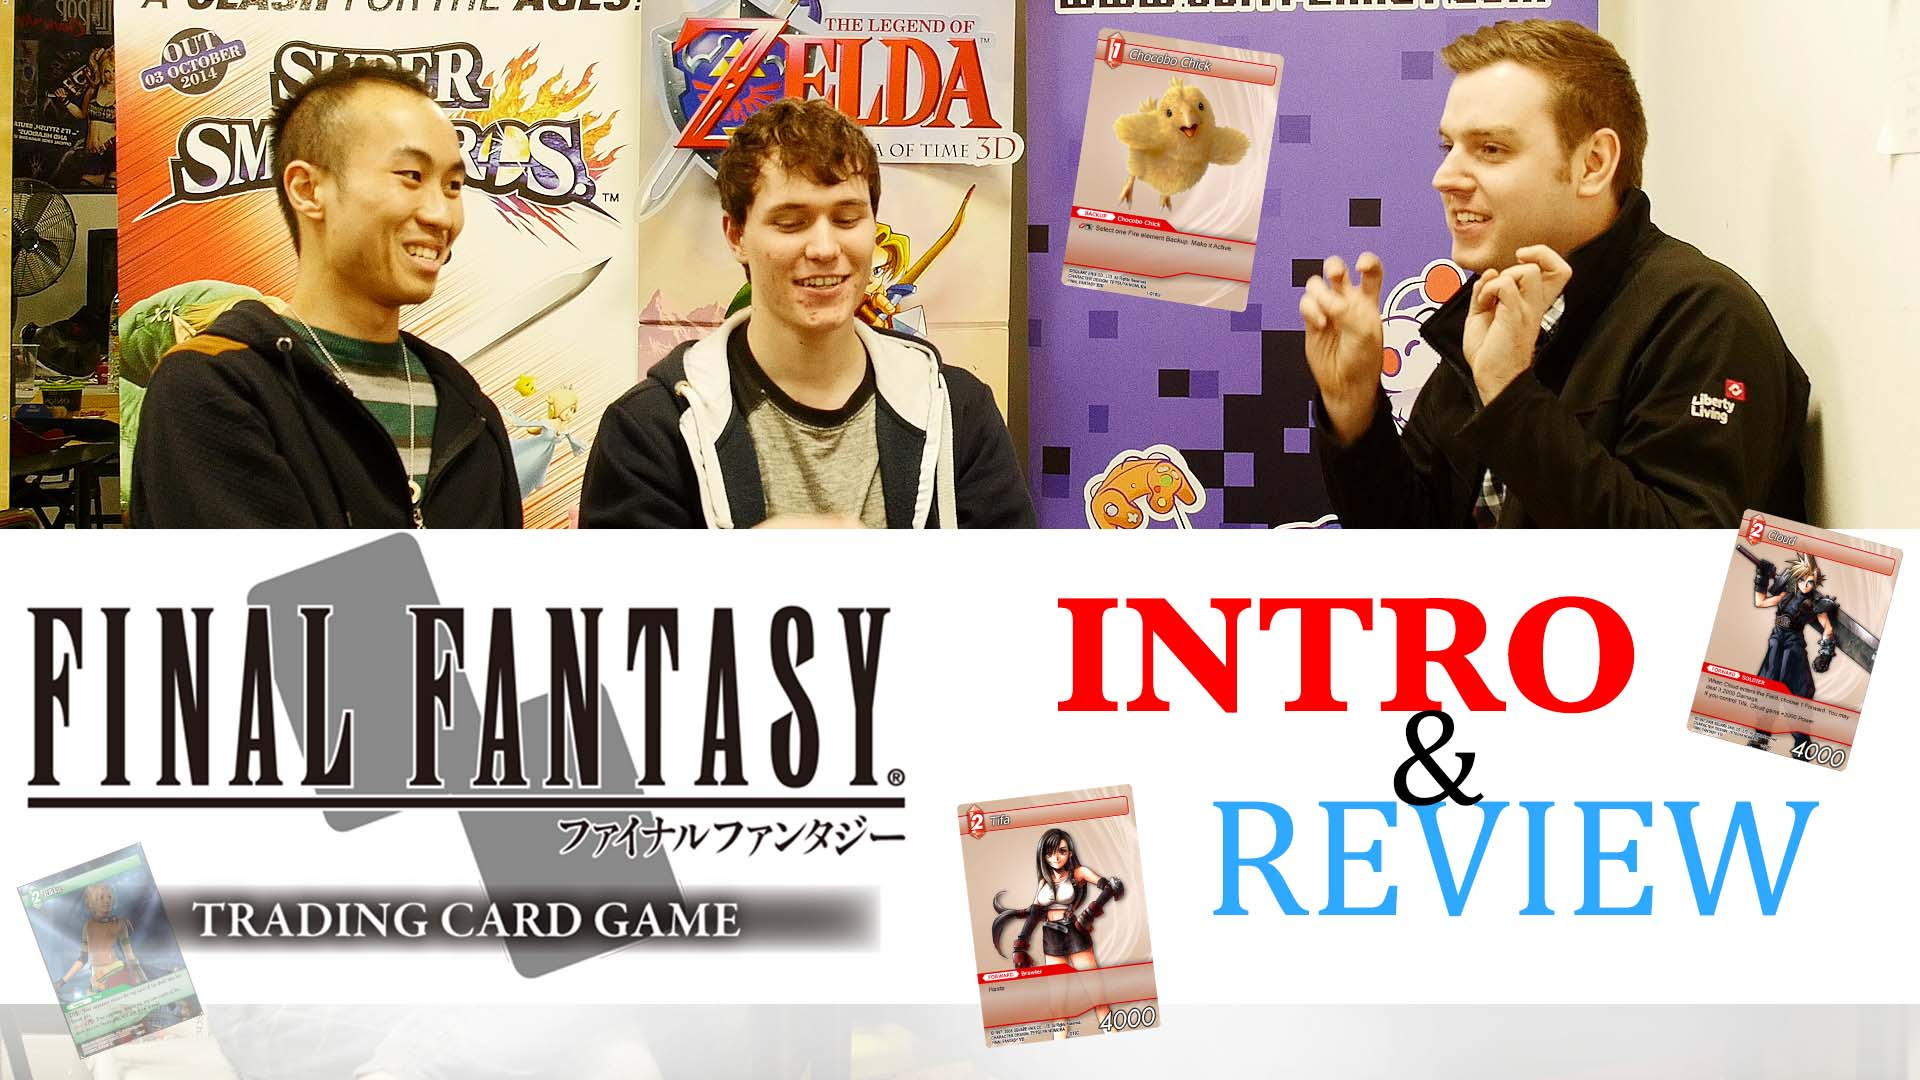 Final Fantasy TCG Video Review post image